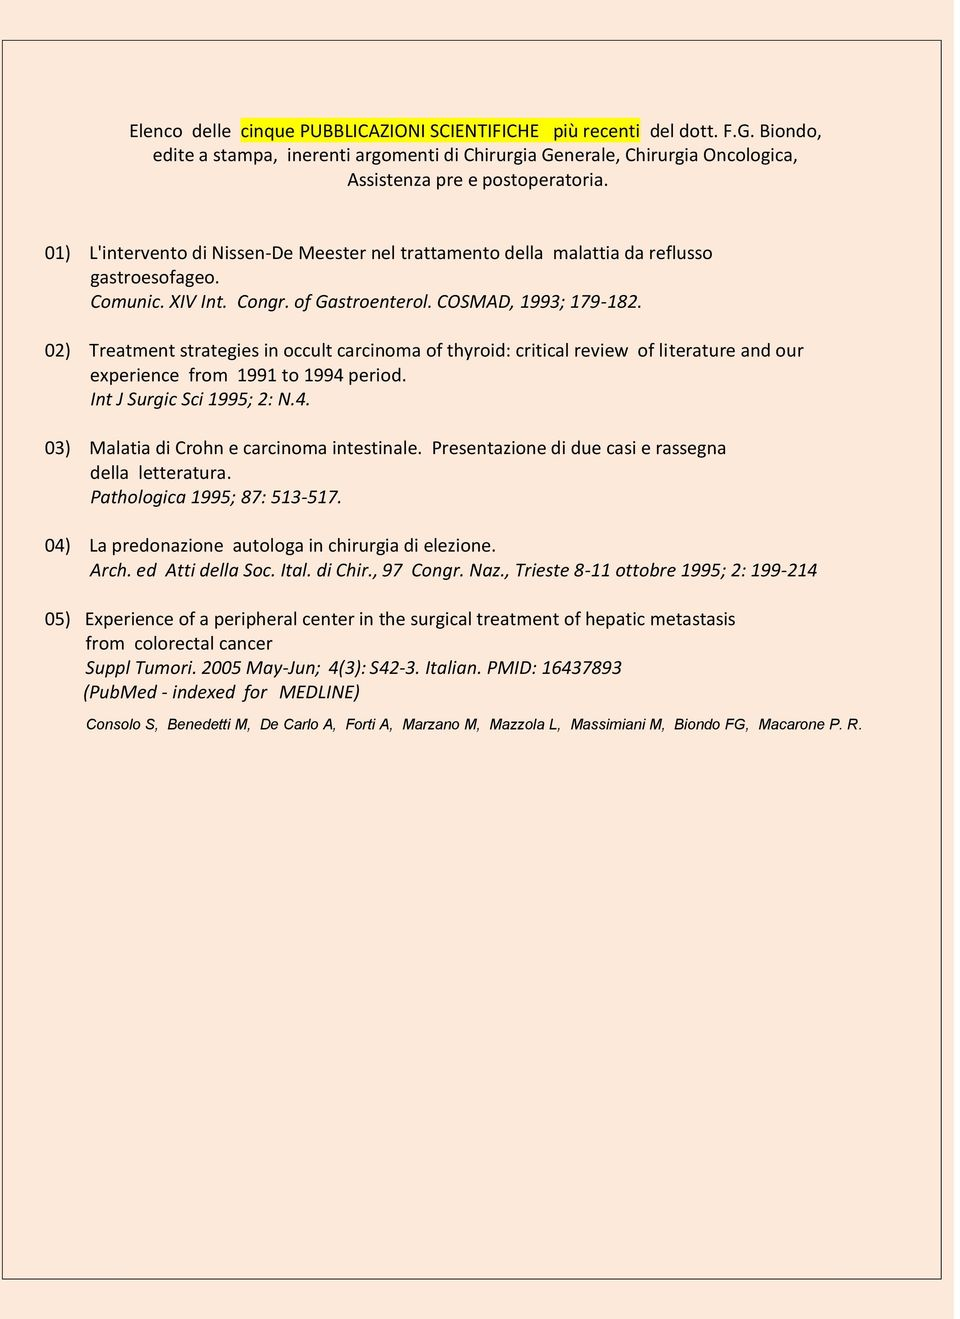 02) Treatment strategies in occult carcinoma of thyroid: critical review of literature and our experience from 1991 to 1994 period. Int J Surgic Sci 1995; 2: N.4. 03) Malatia di Crohn e carcinoma intestinale.